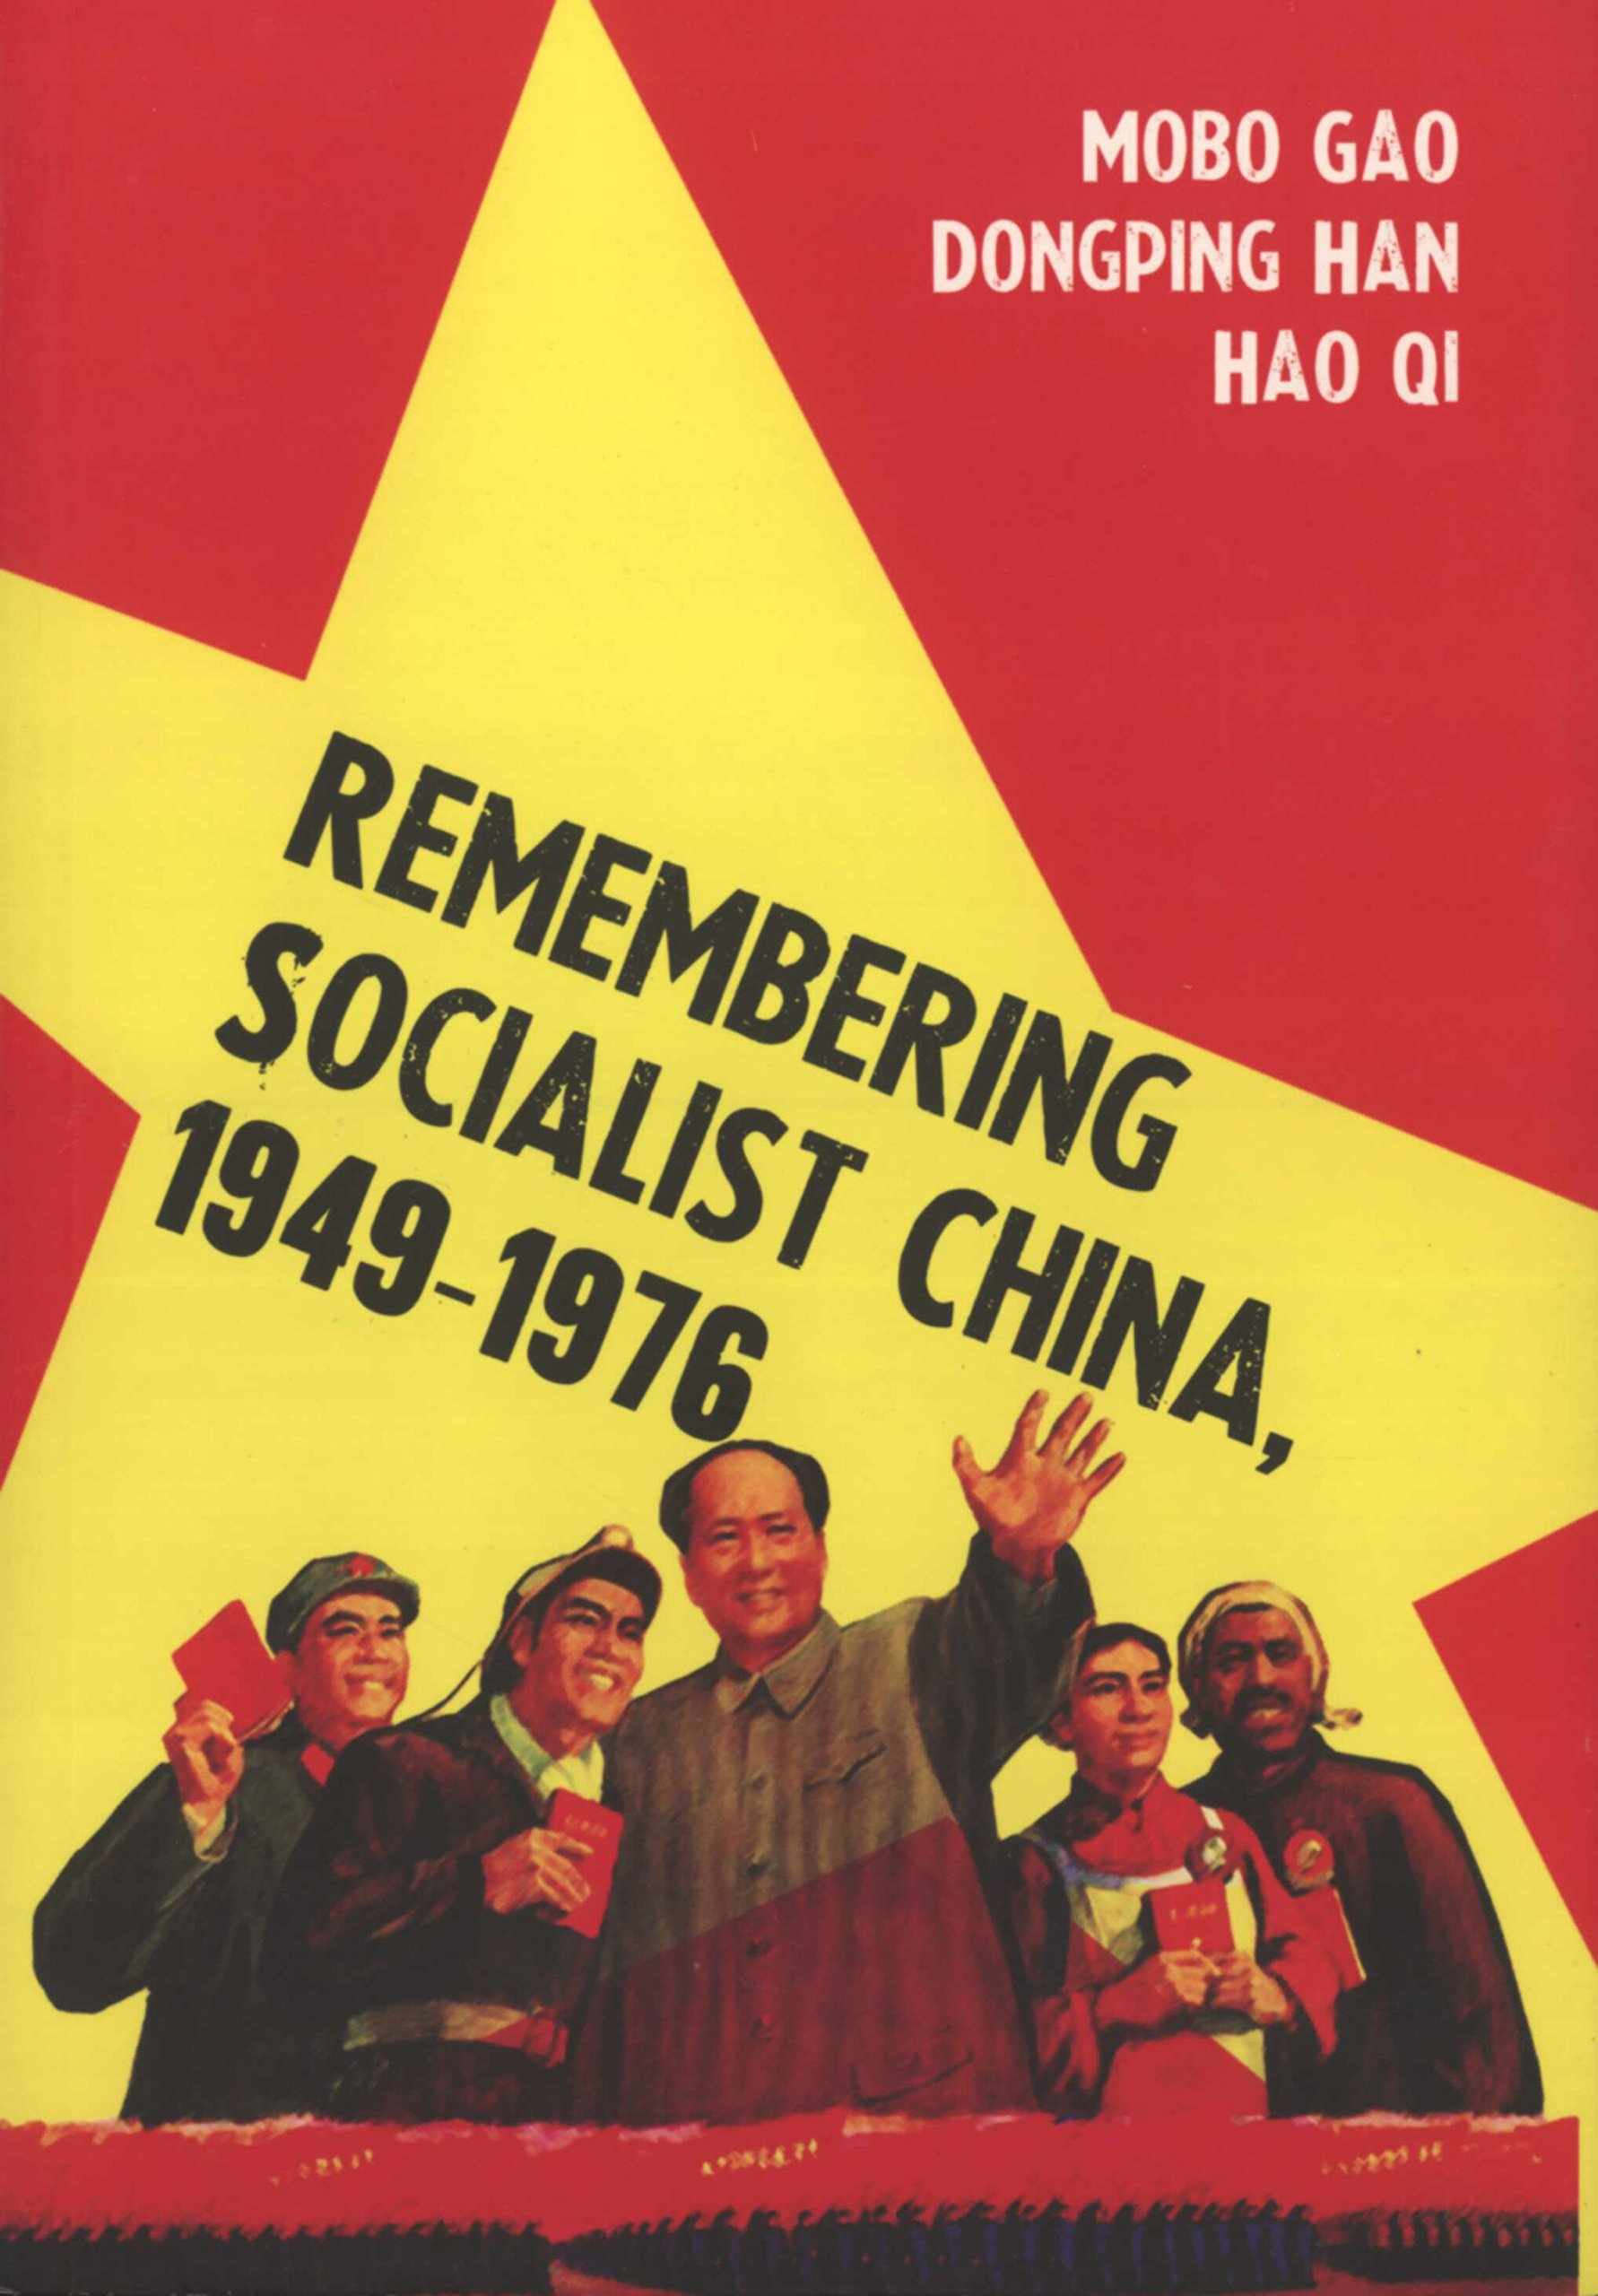 Remembering Socialist China 1949-1976